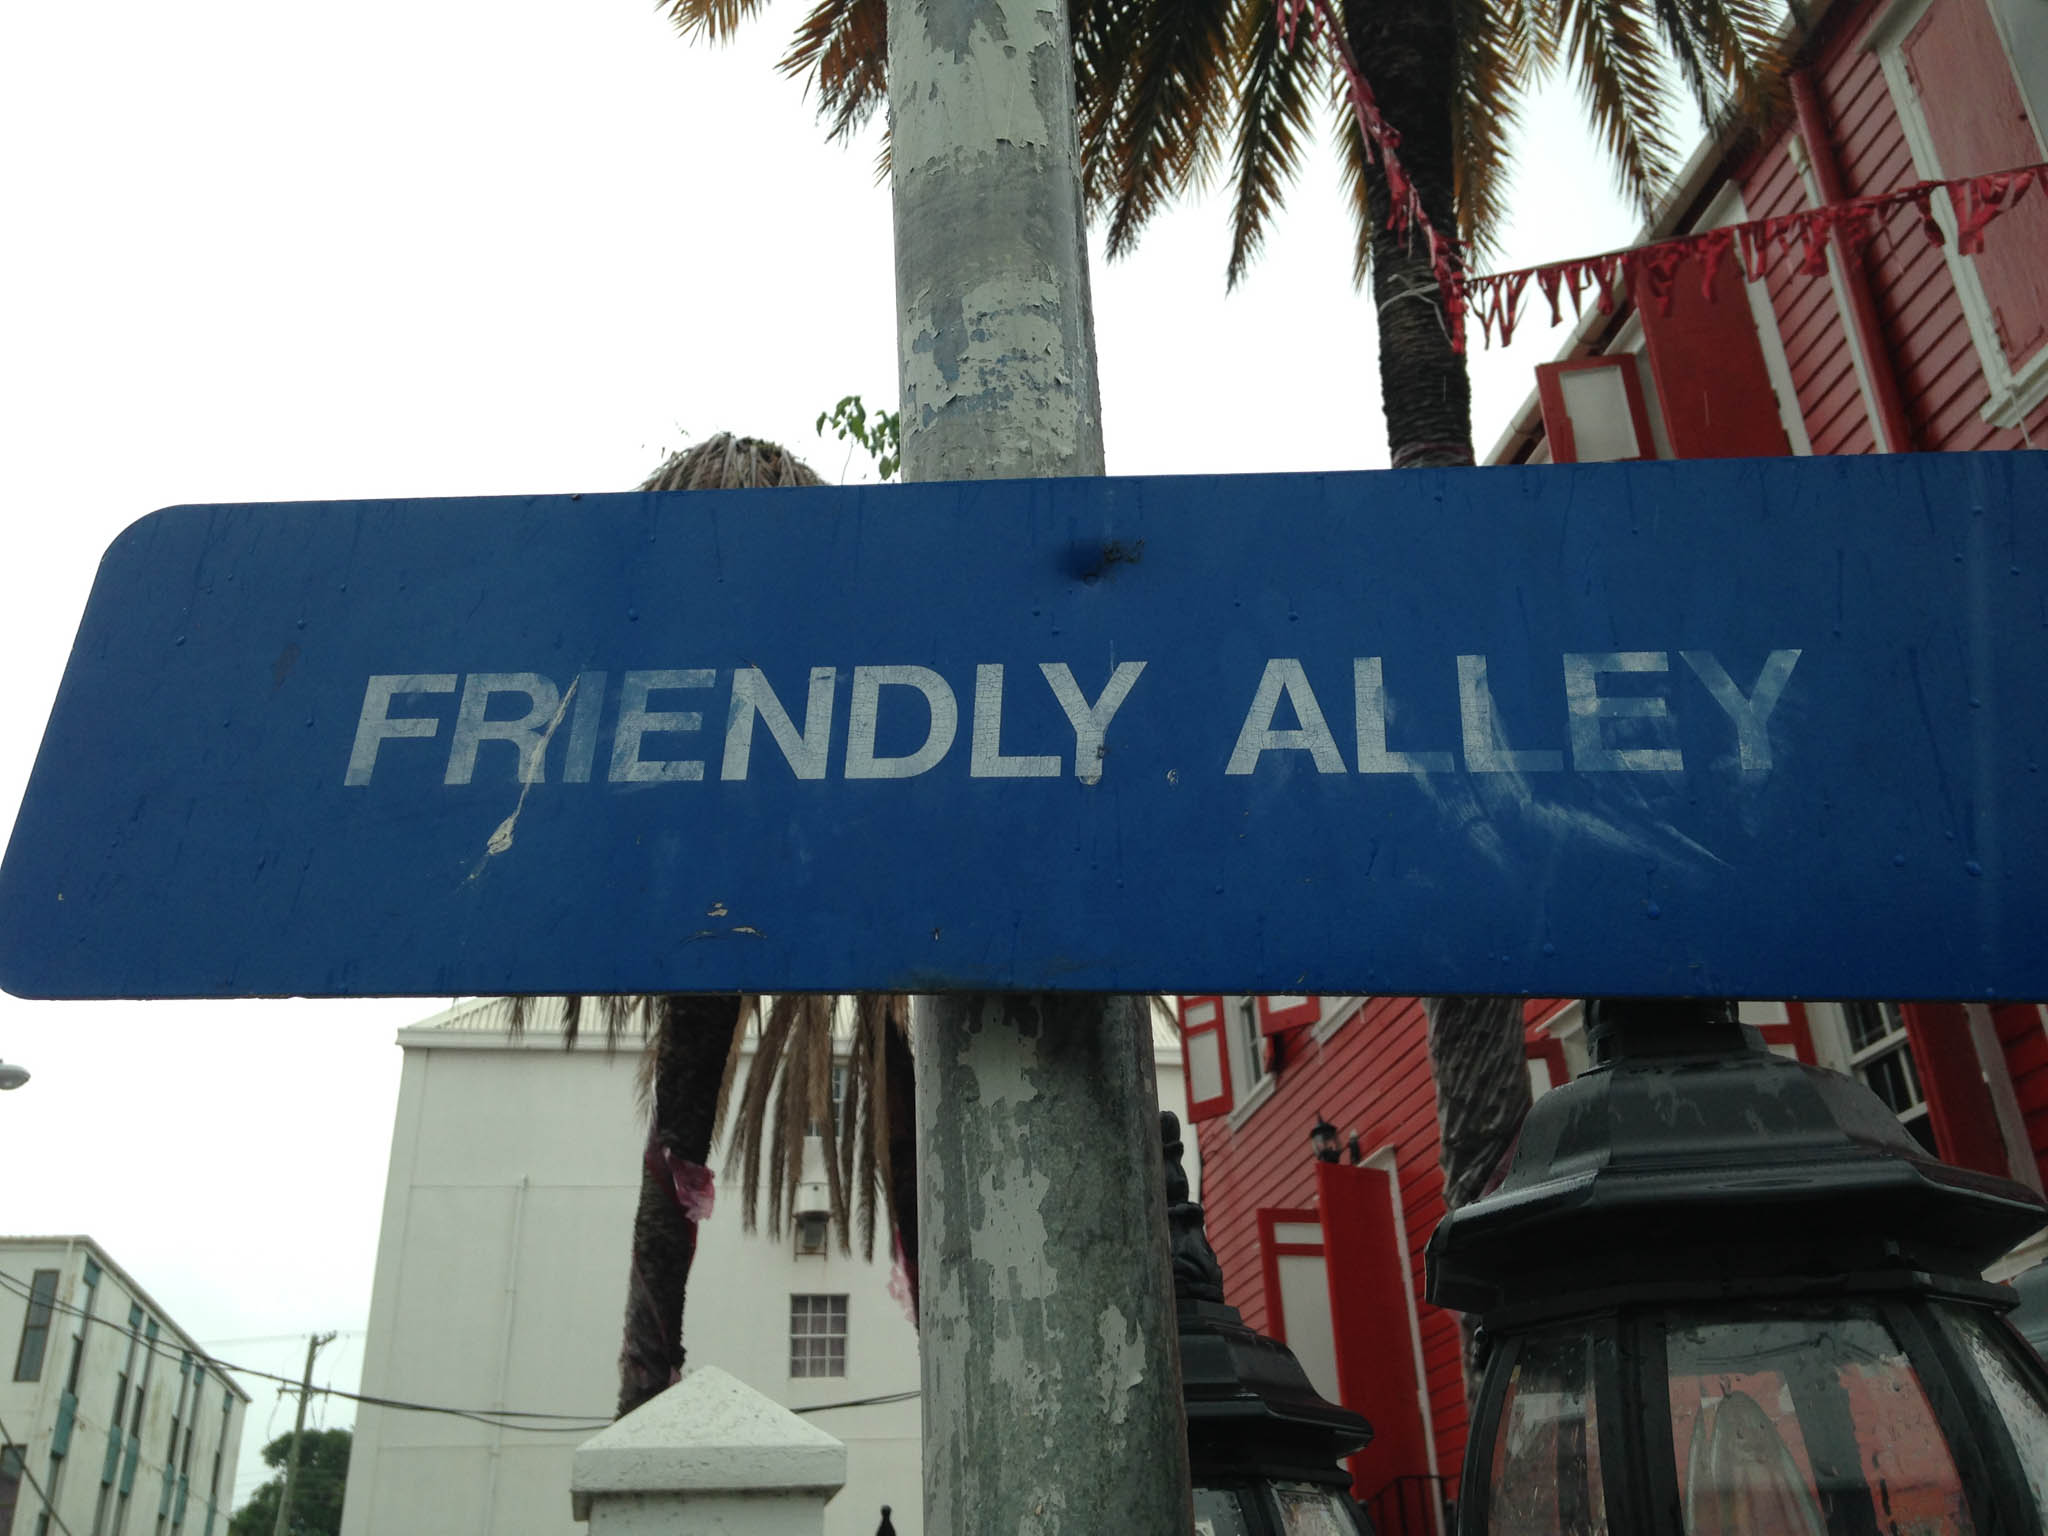 Giving Alleys a Good Name